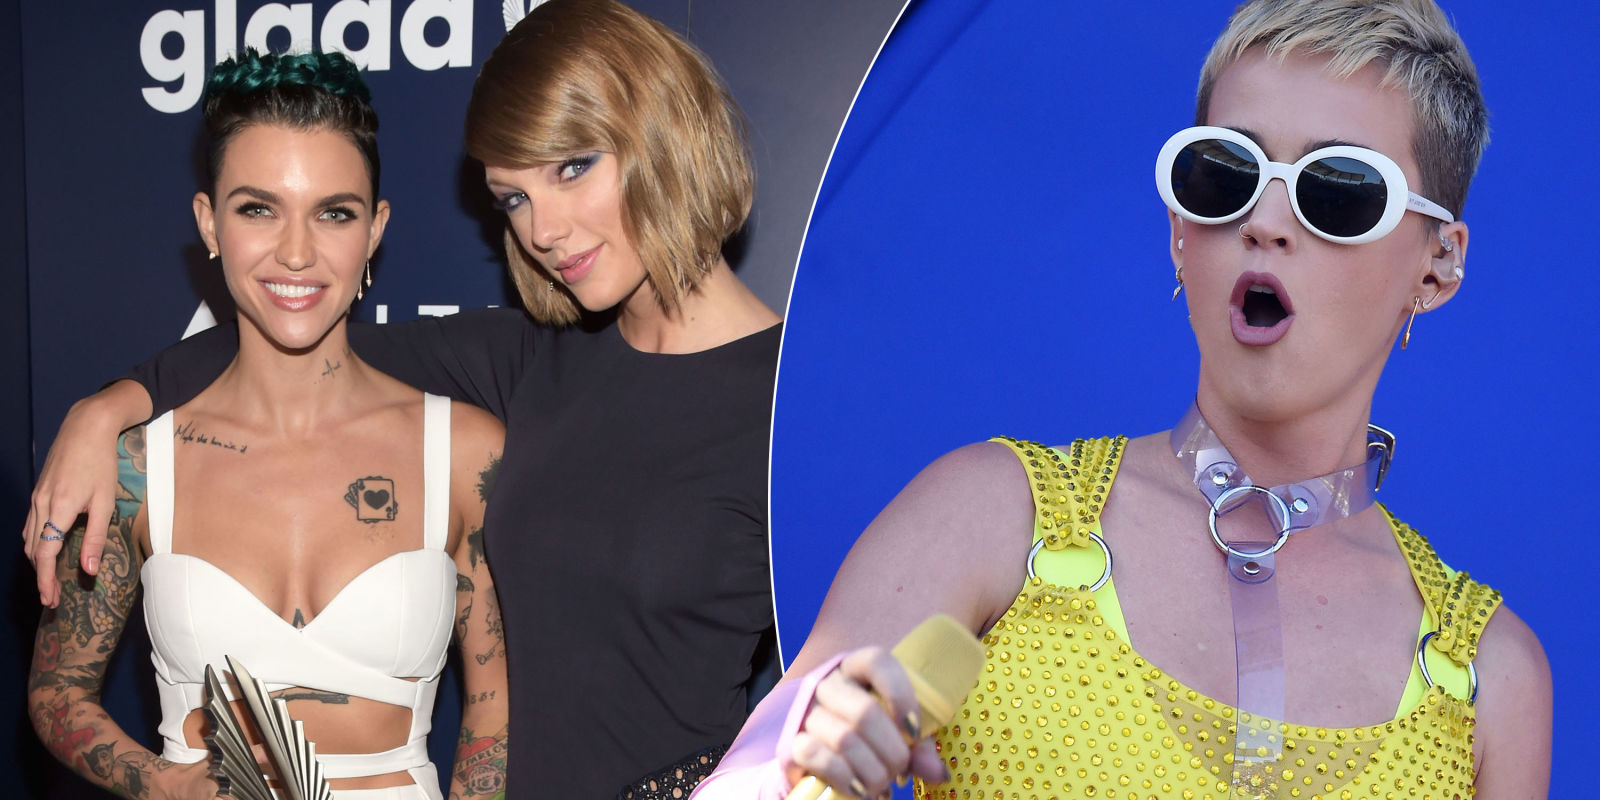 Ruby Rose backtracks on comments about Katy Perry song